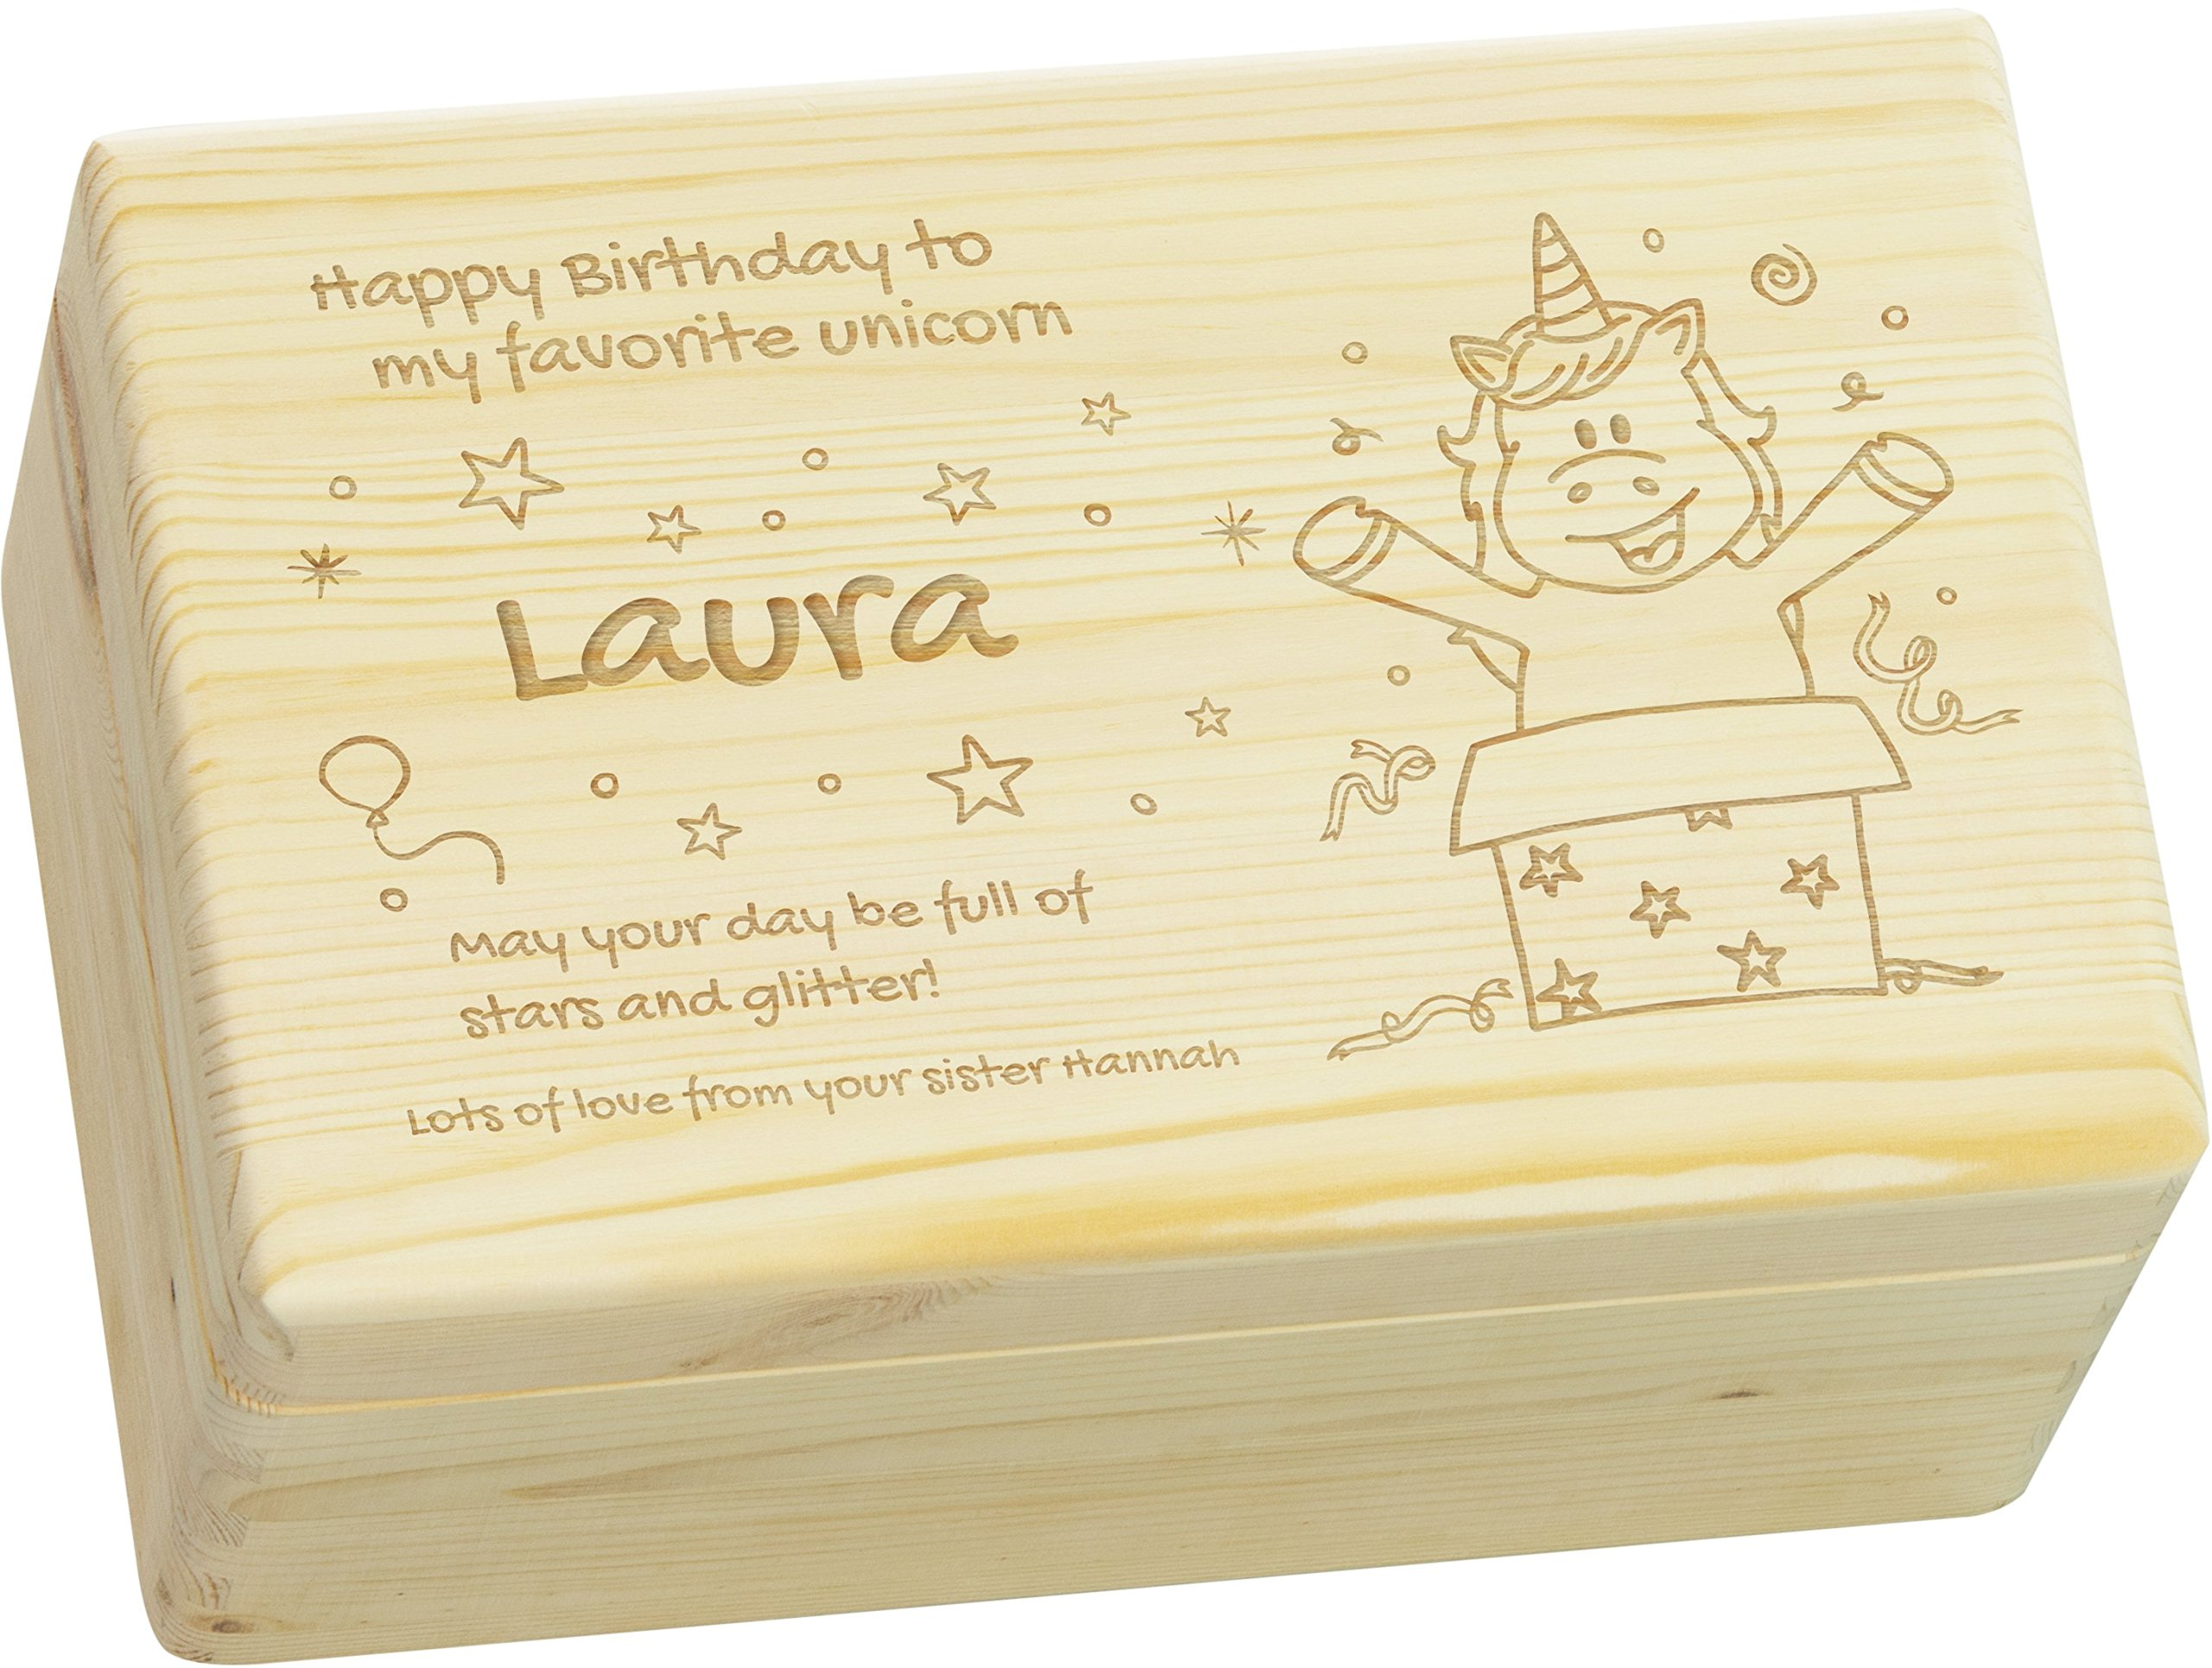 LAUBLUST Engraved Wooden Gift Box - Size L, 12x8x6in - PERSONALIZED Birthday Box - Unicorn Party Design | Natural Wood - Made in Germany